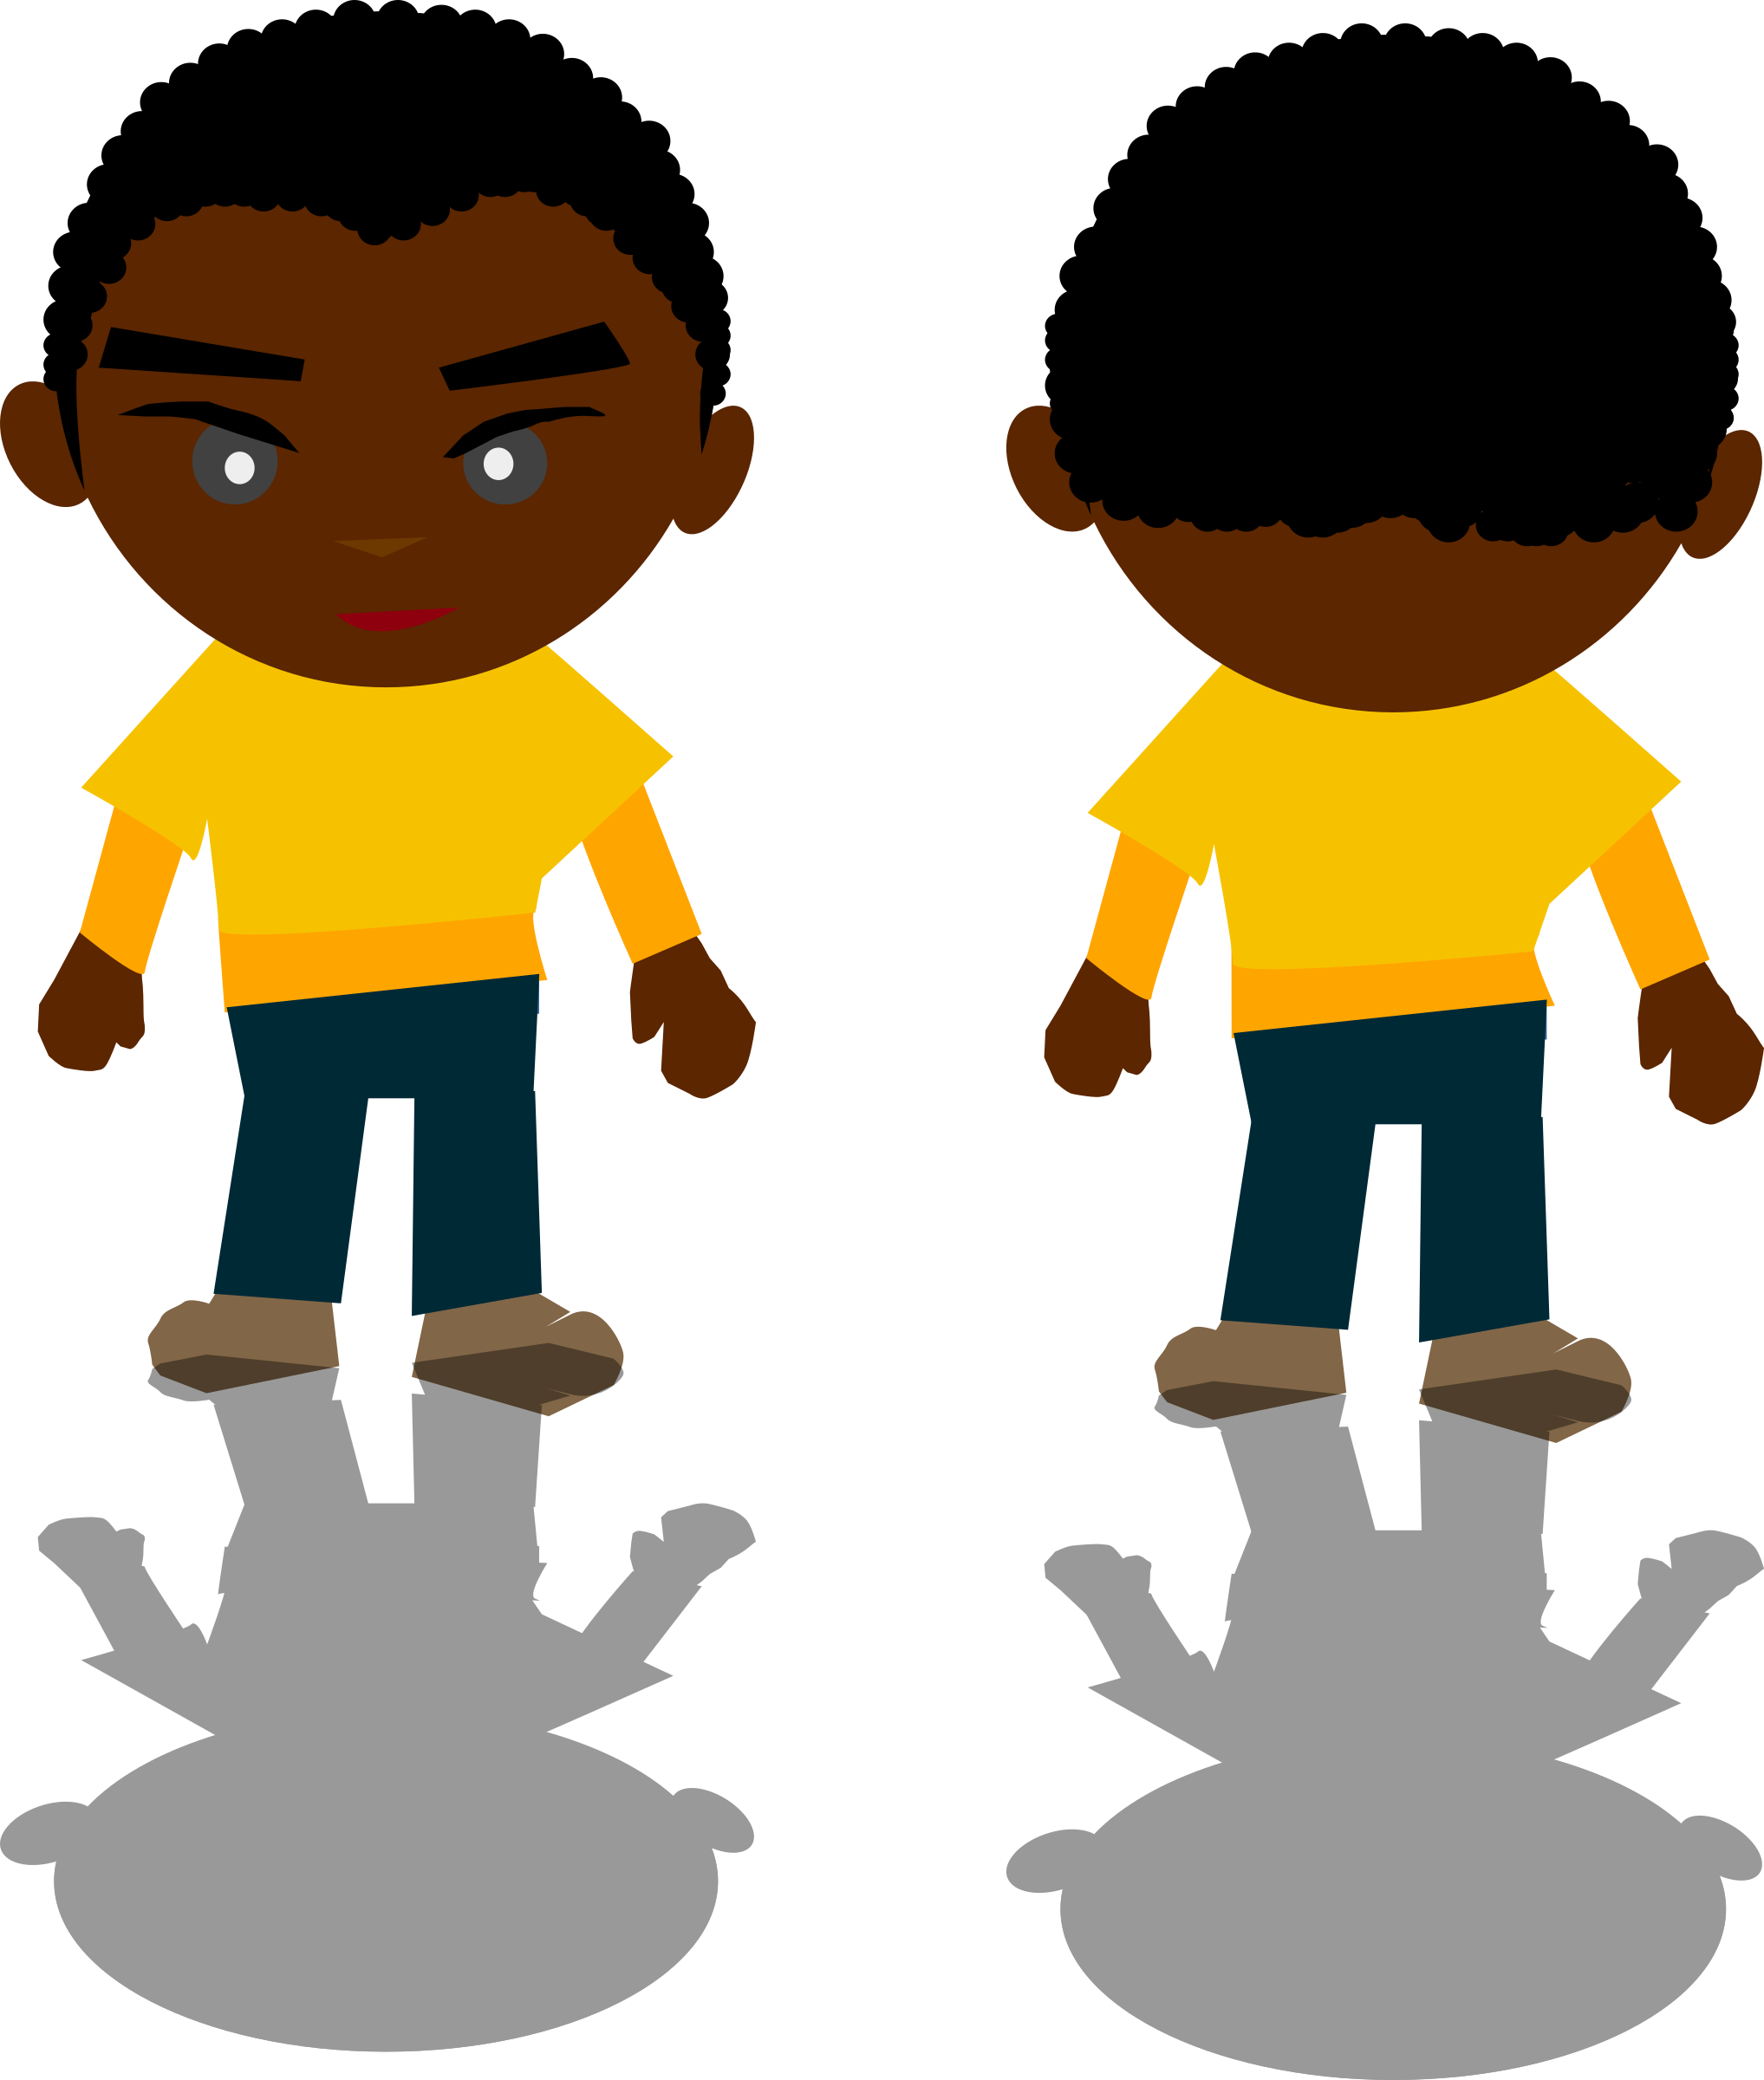 Black Boy - PNG by Ricardo